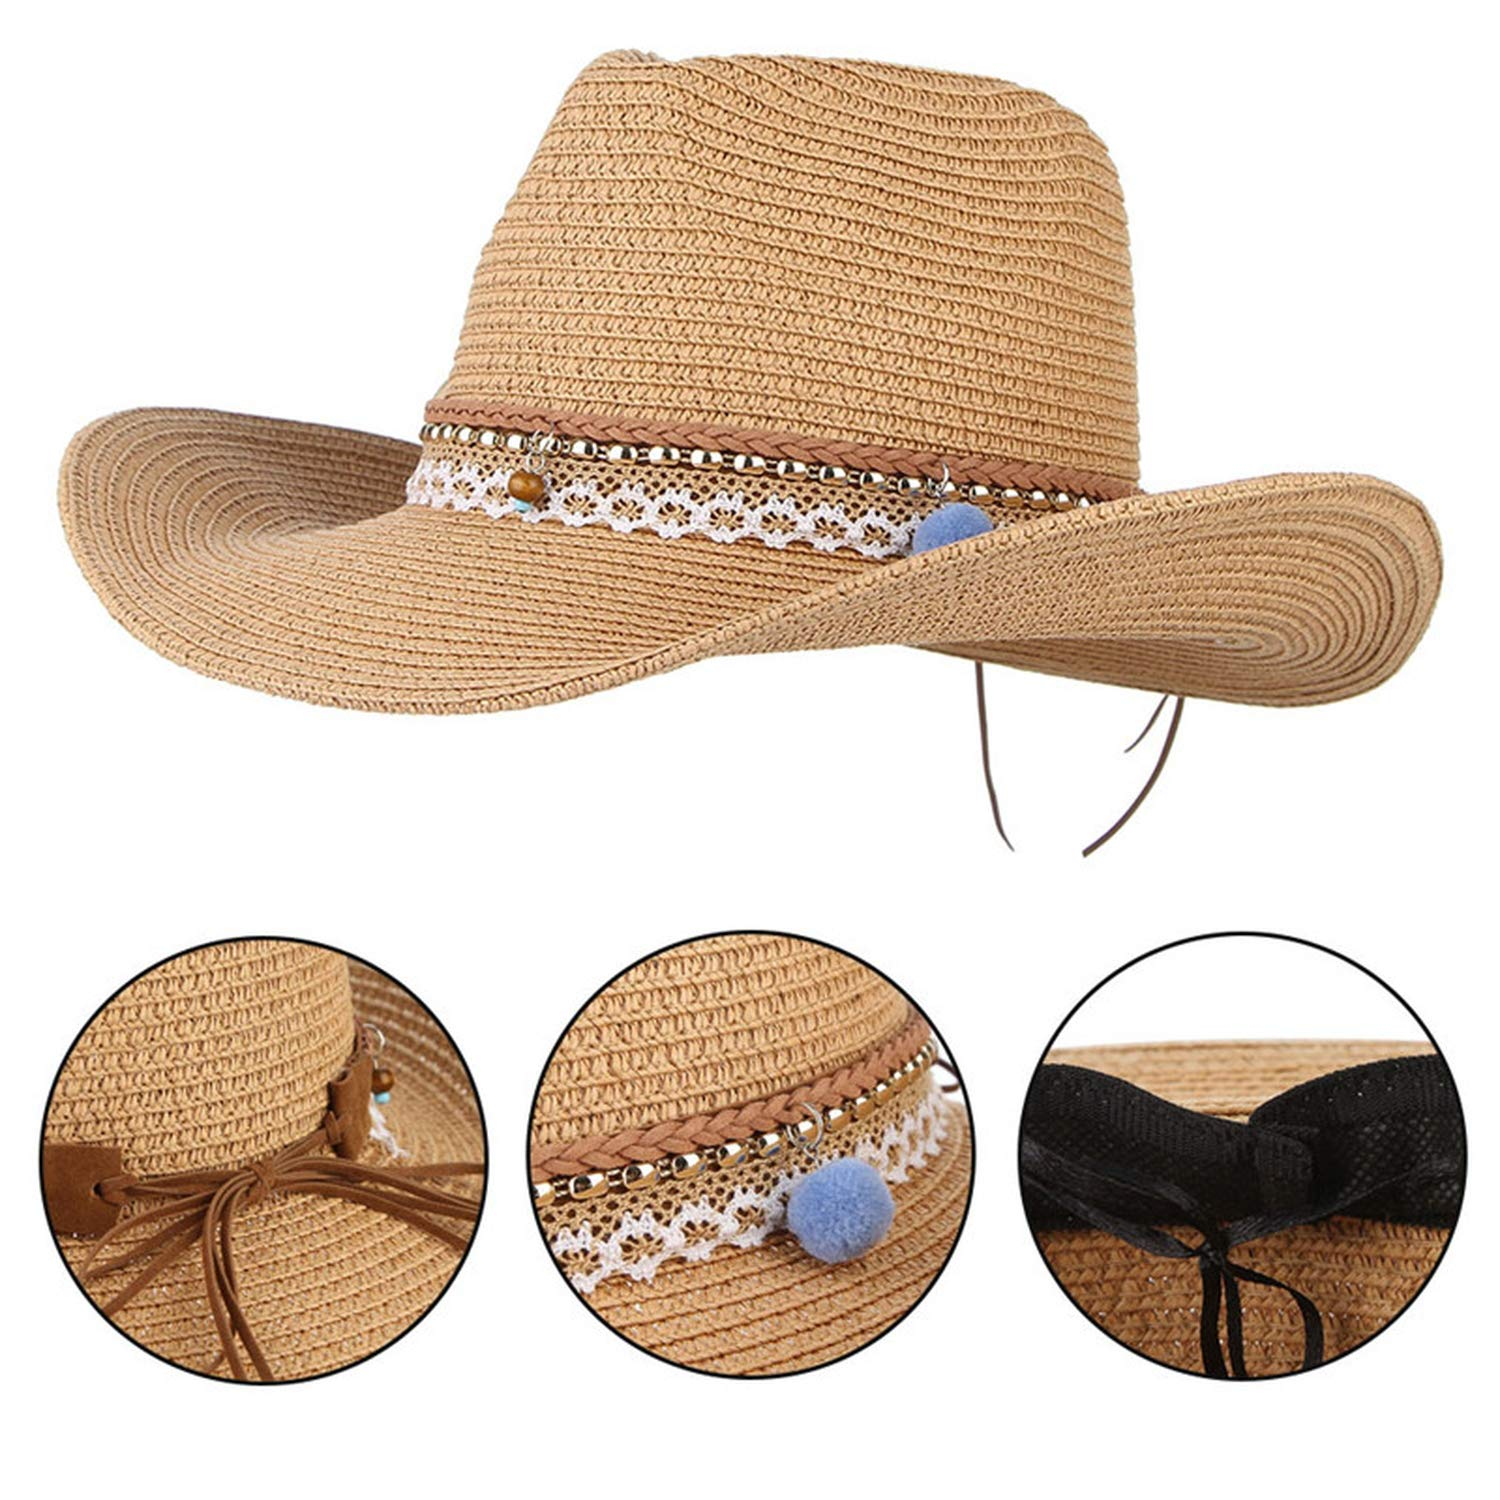 546ea983c9c12 Amazon.com  Vintage Boho Summer Hats for Women Wide Brim Straw Hat Western  Cowboy Jazz Hat Men Beach Visor Sun Cap Black  Clothing